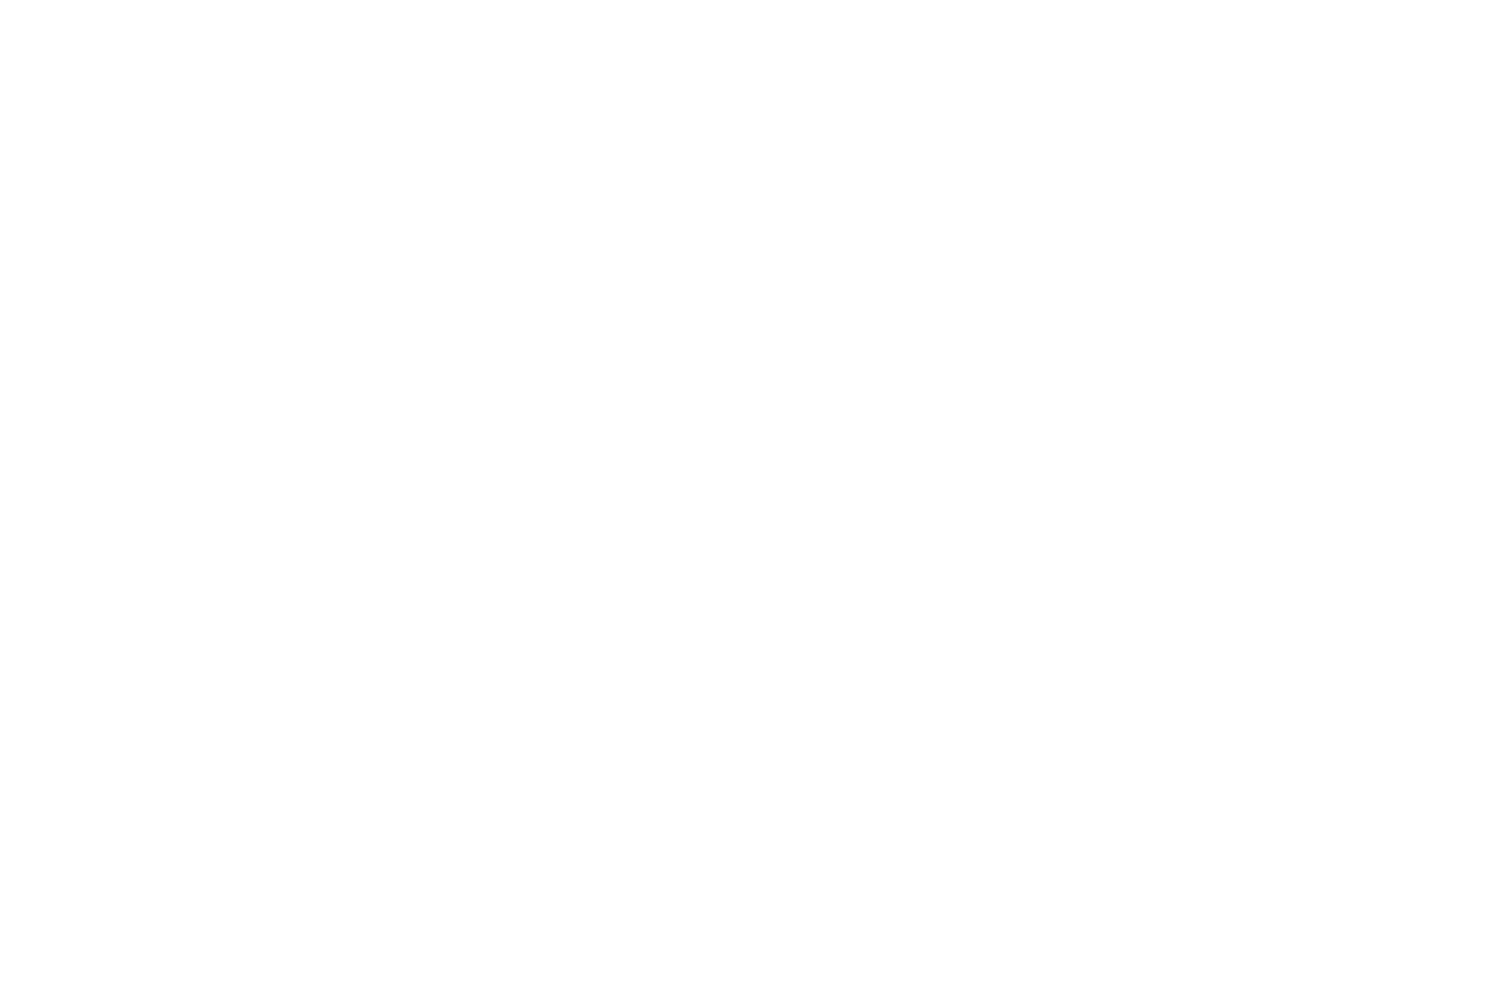 Brand-Secor-Farms.png